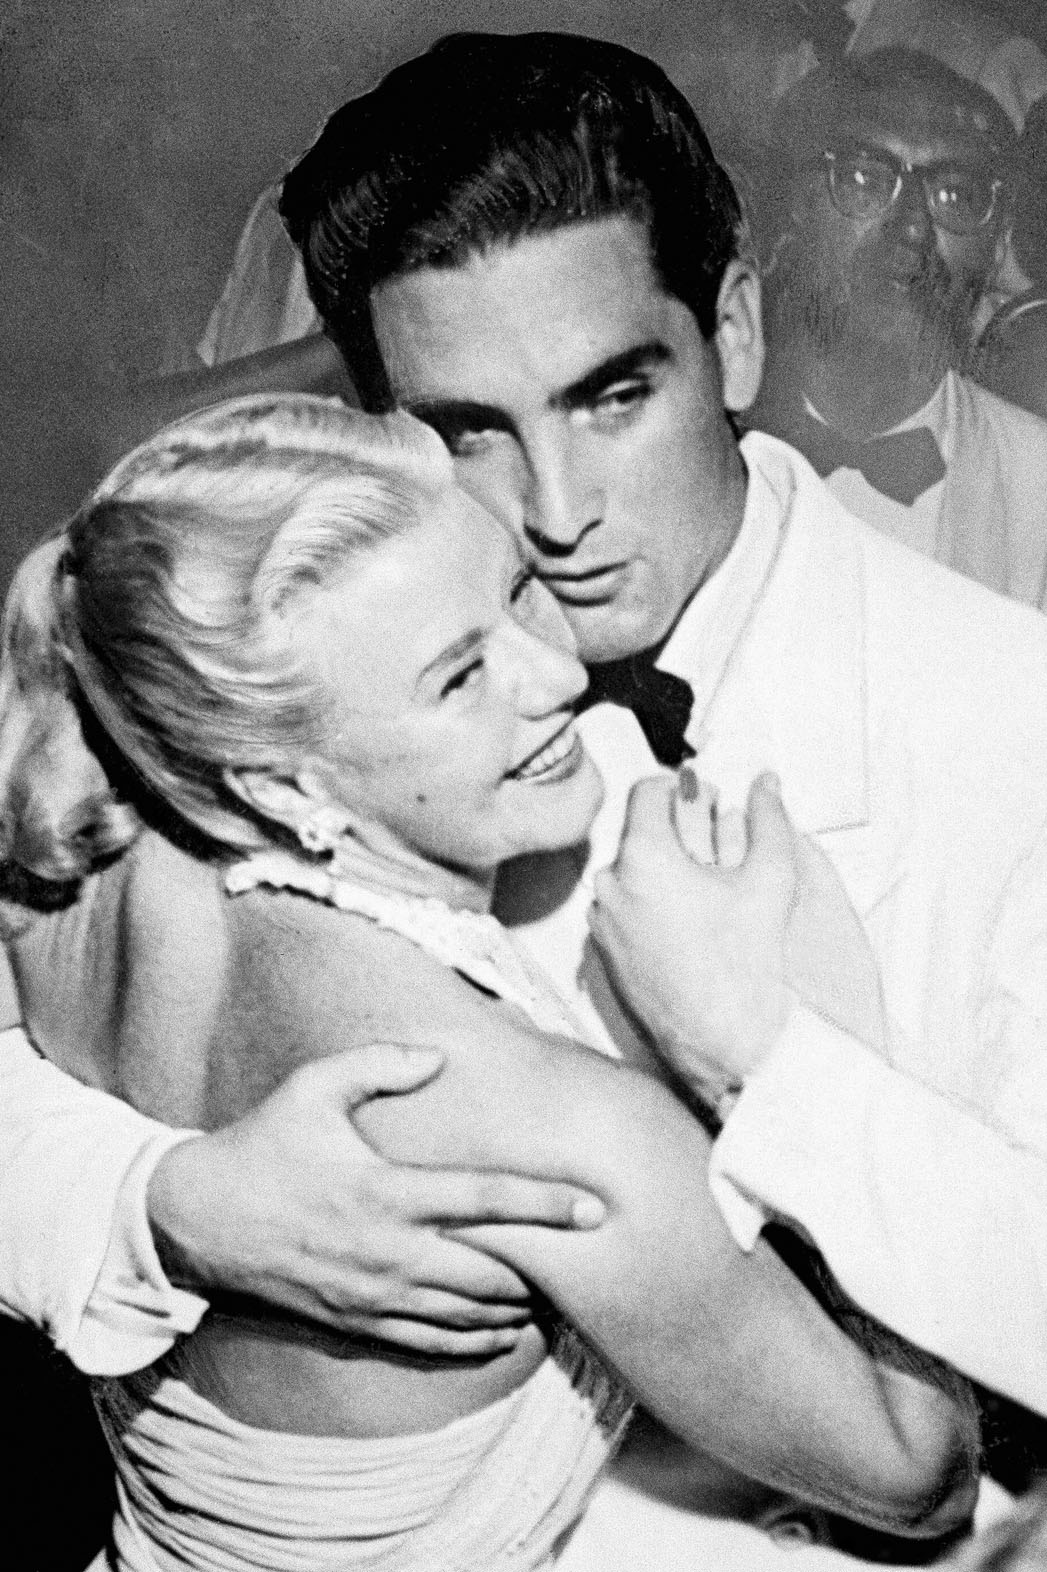 Ginger Rogers Jacques Bergerac - P 2014